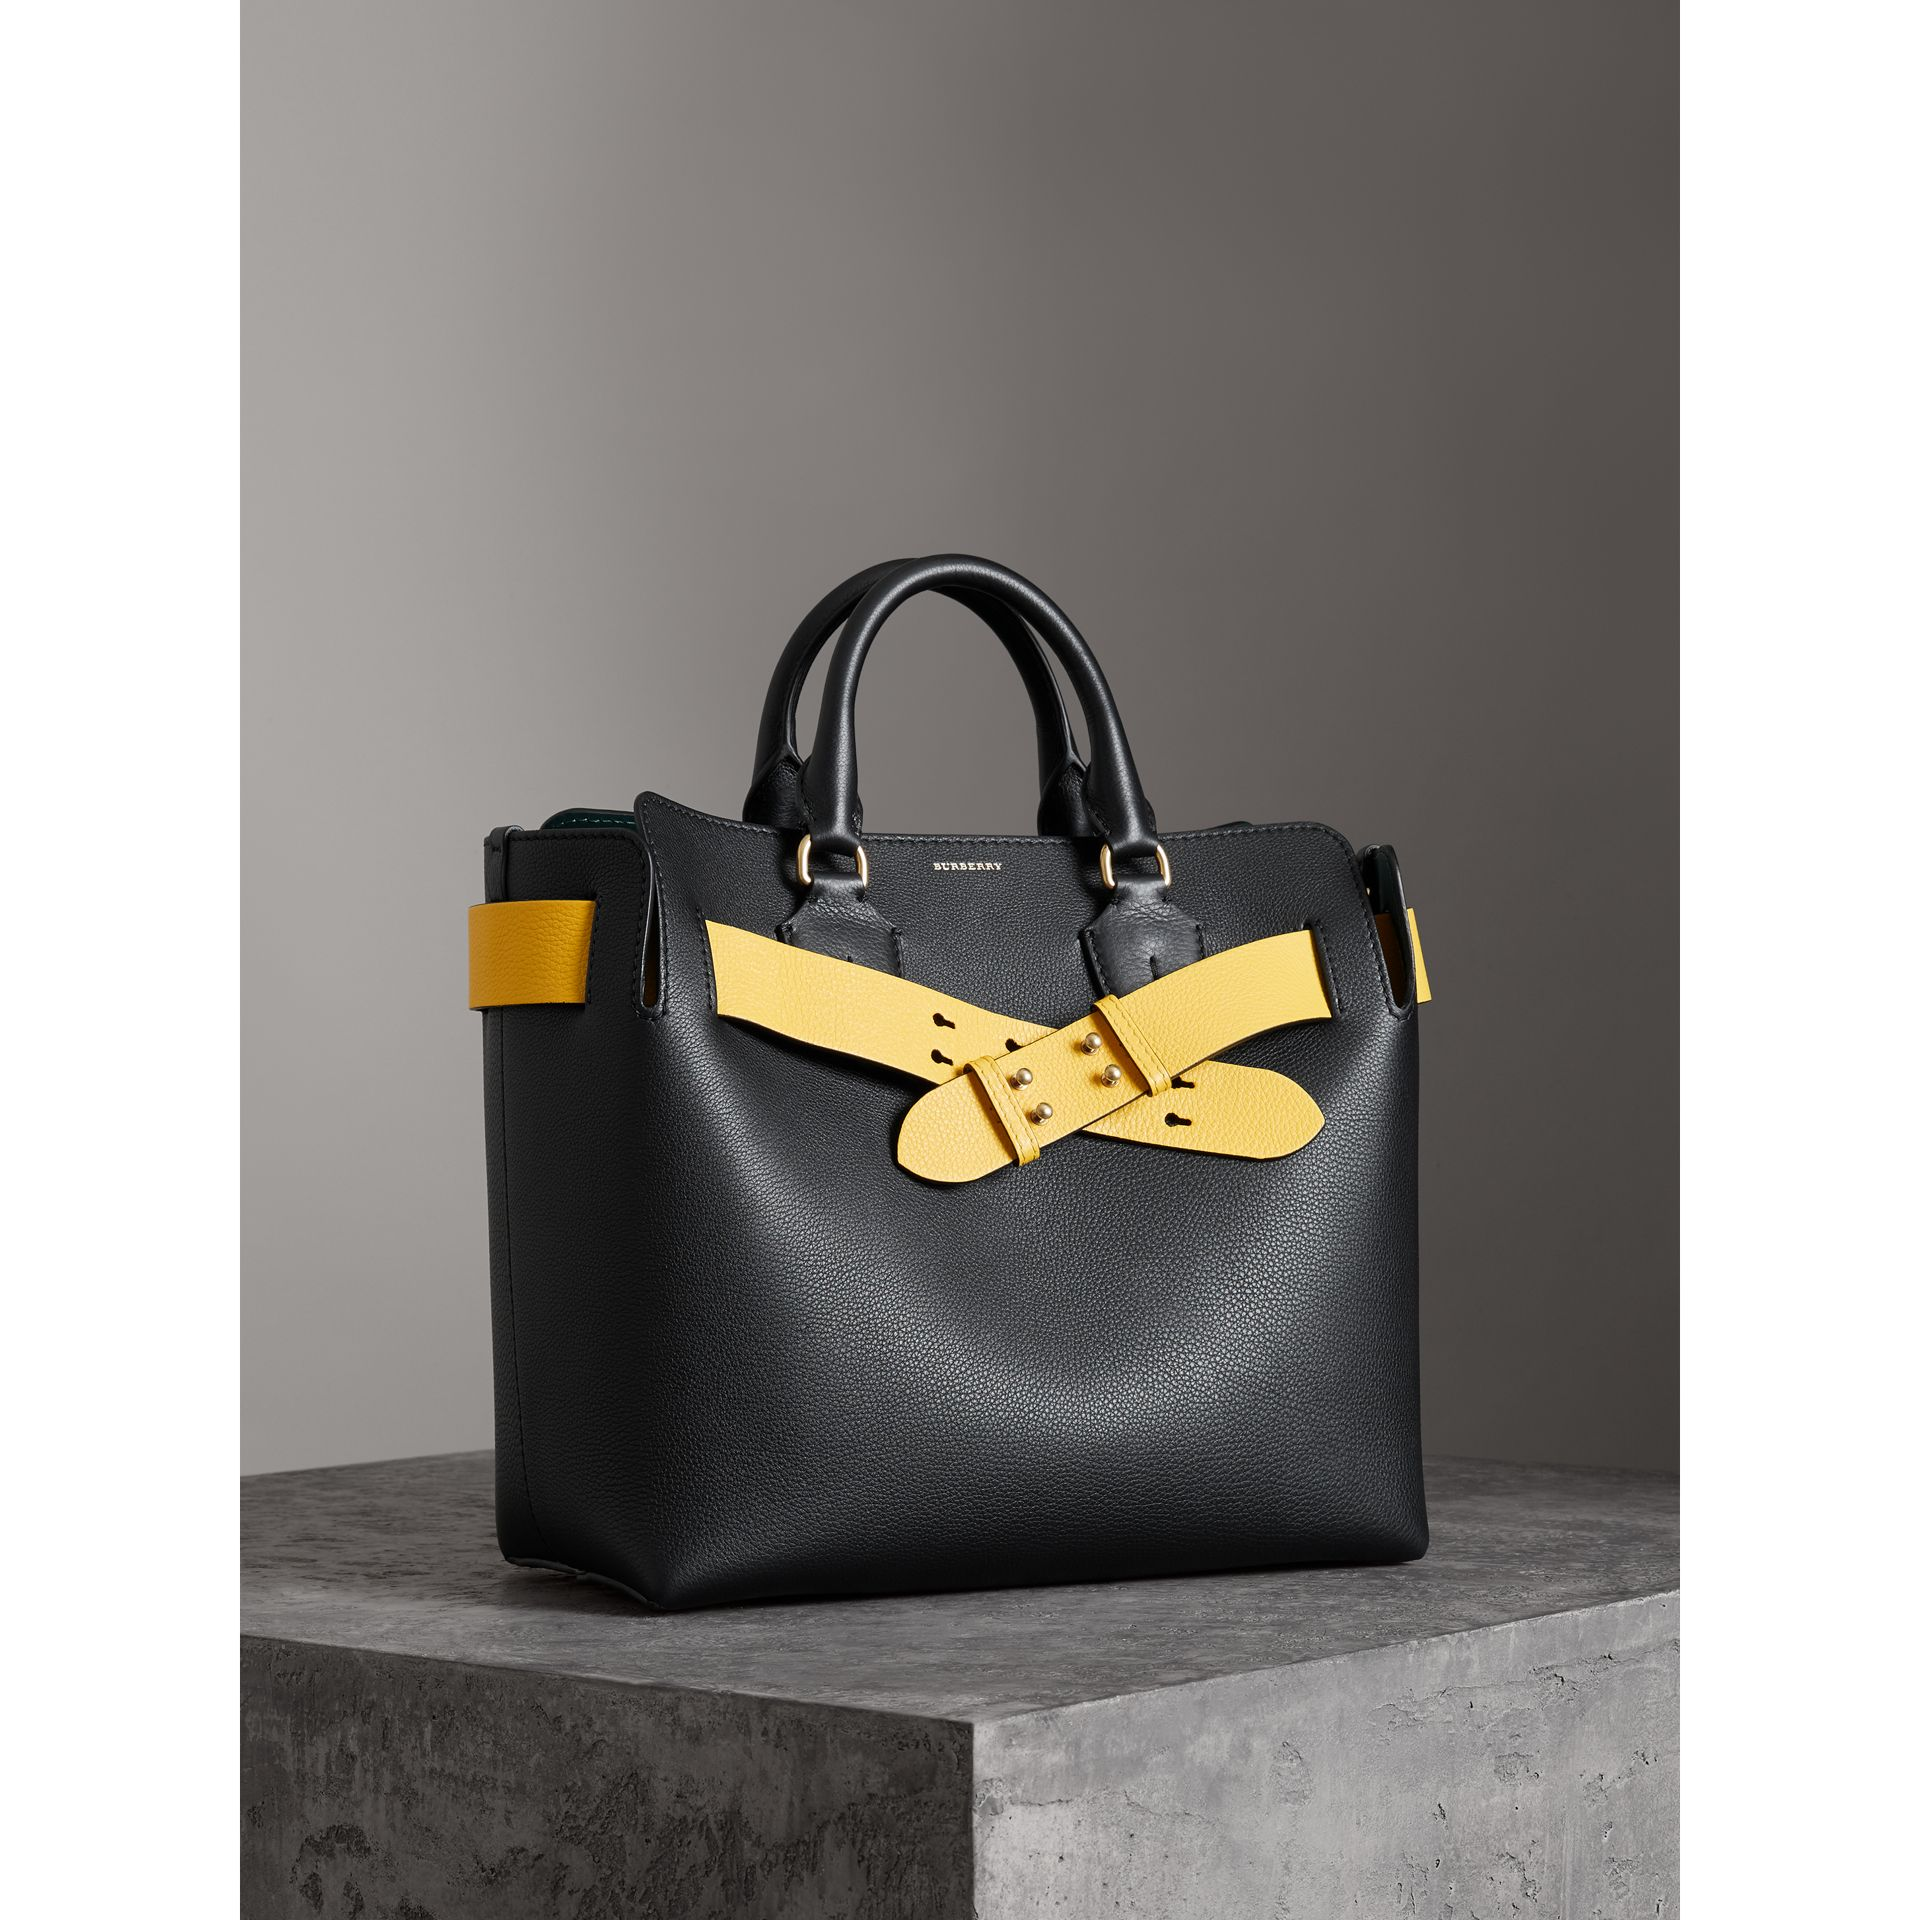 Sac The Belt moyen en cuir (Noir) - Femme | Burberry - photo de la galerie 5